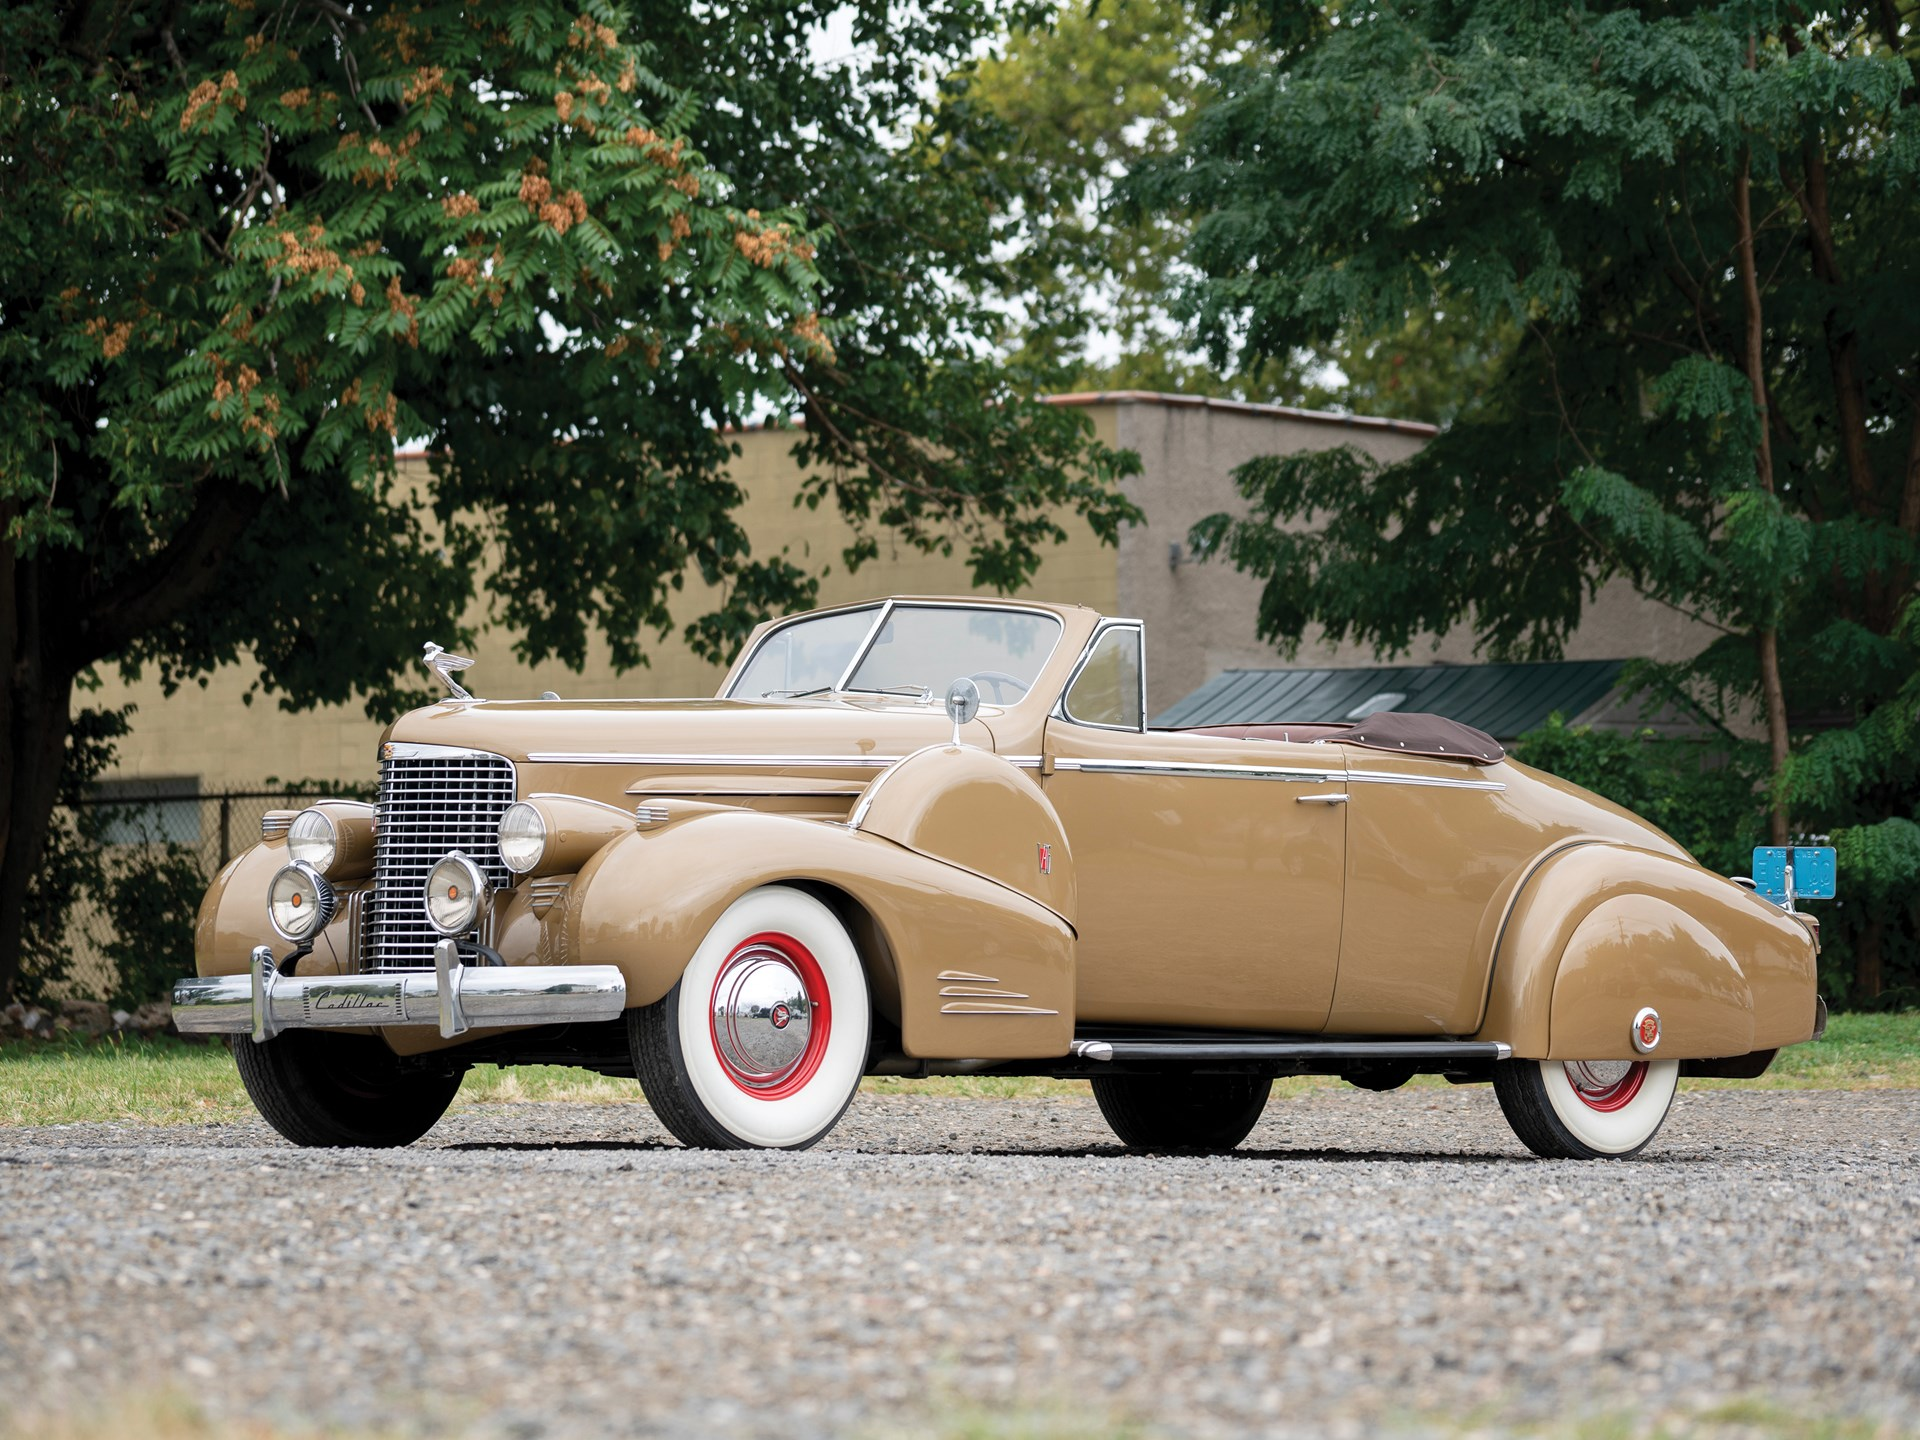 1938 Cadillac V 16 Convertible Coupe Conversion